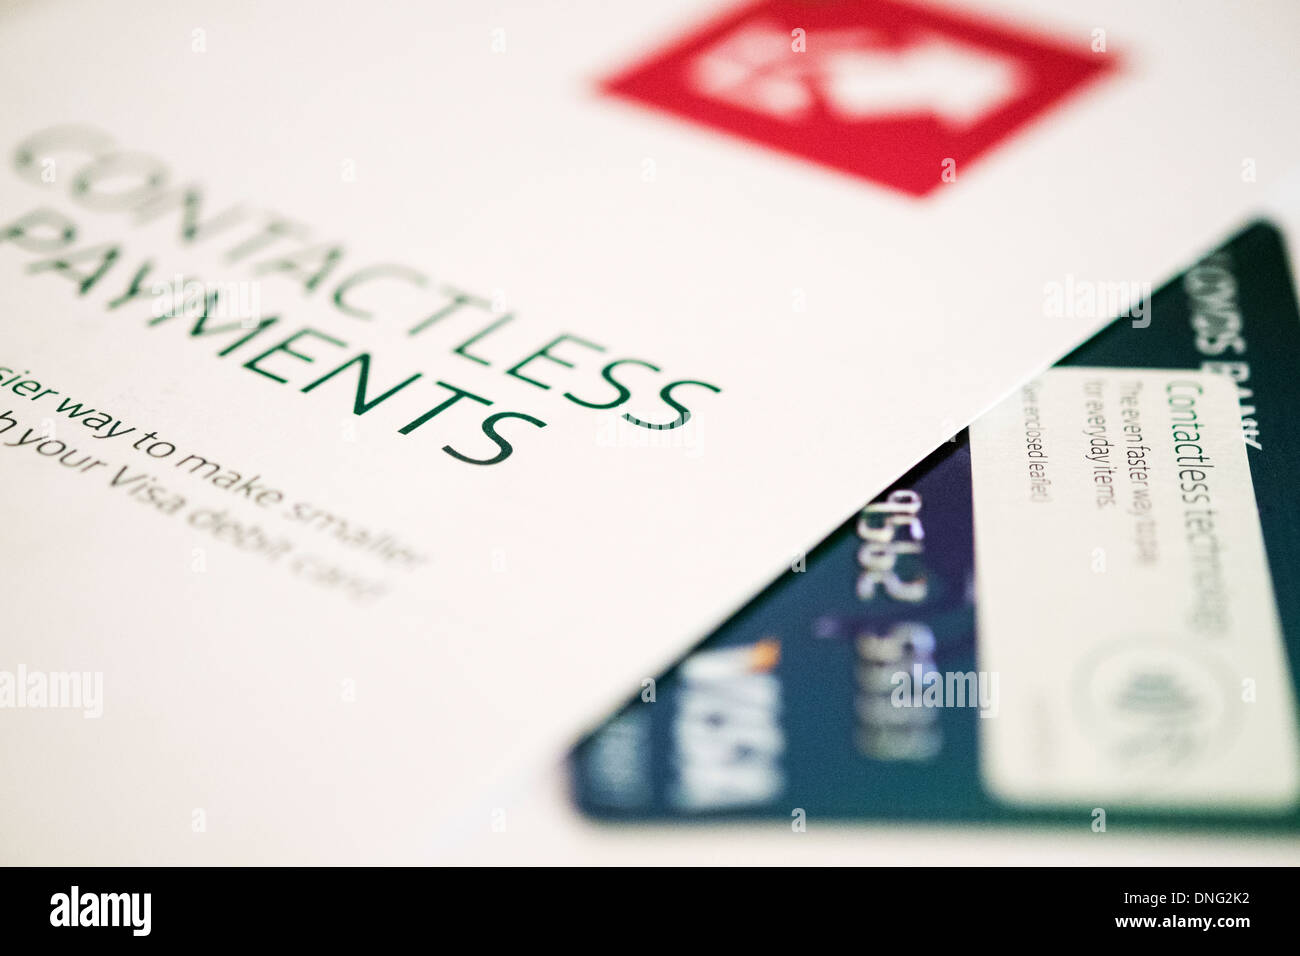 contactless debit credit card payment visa leaflet cut out white background copy space Stock Photo